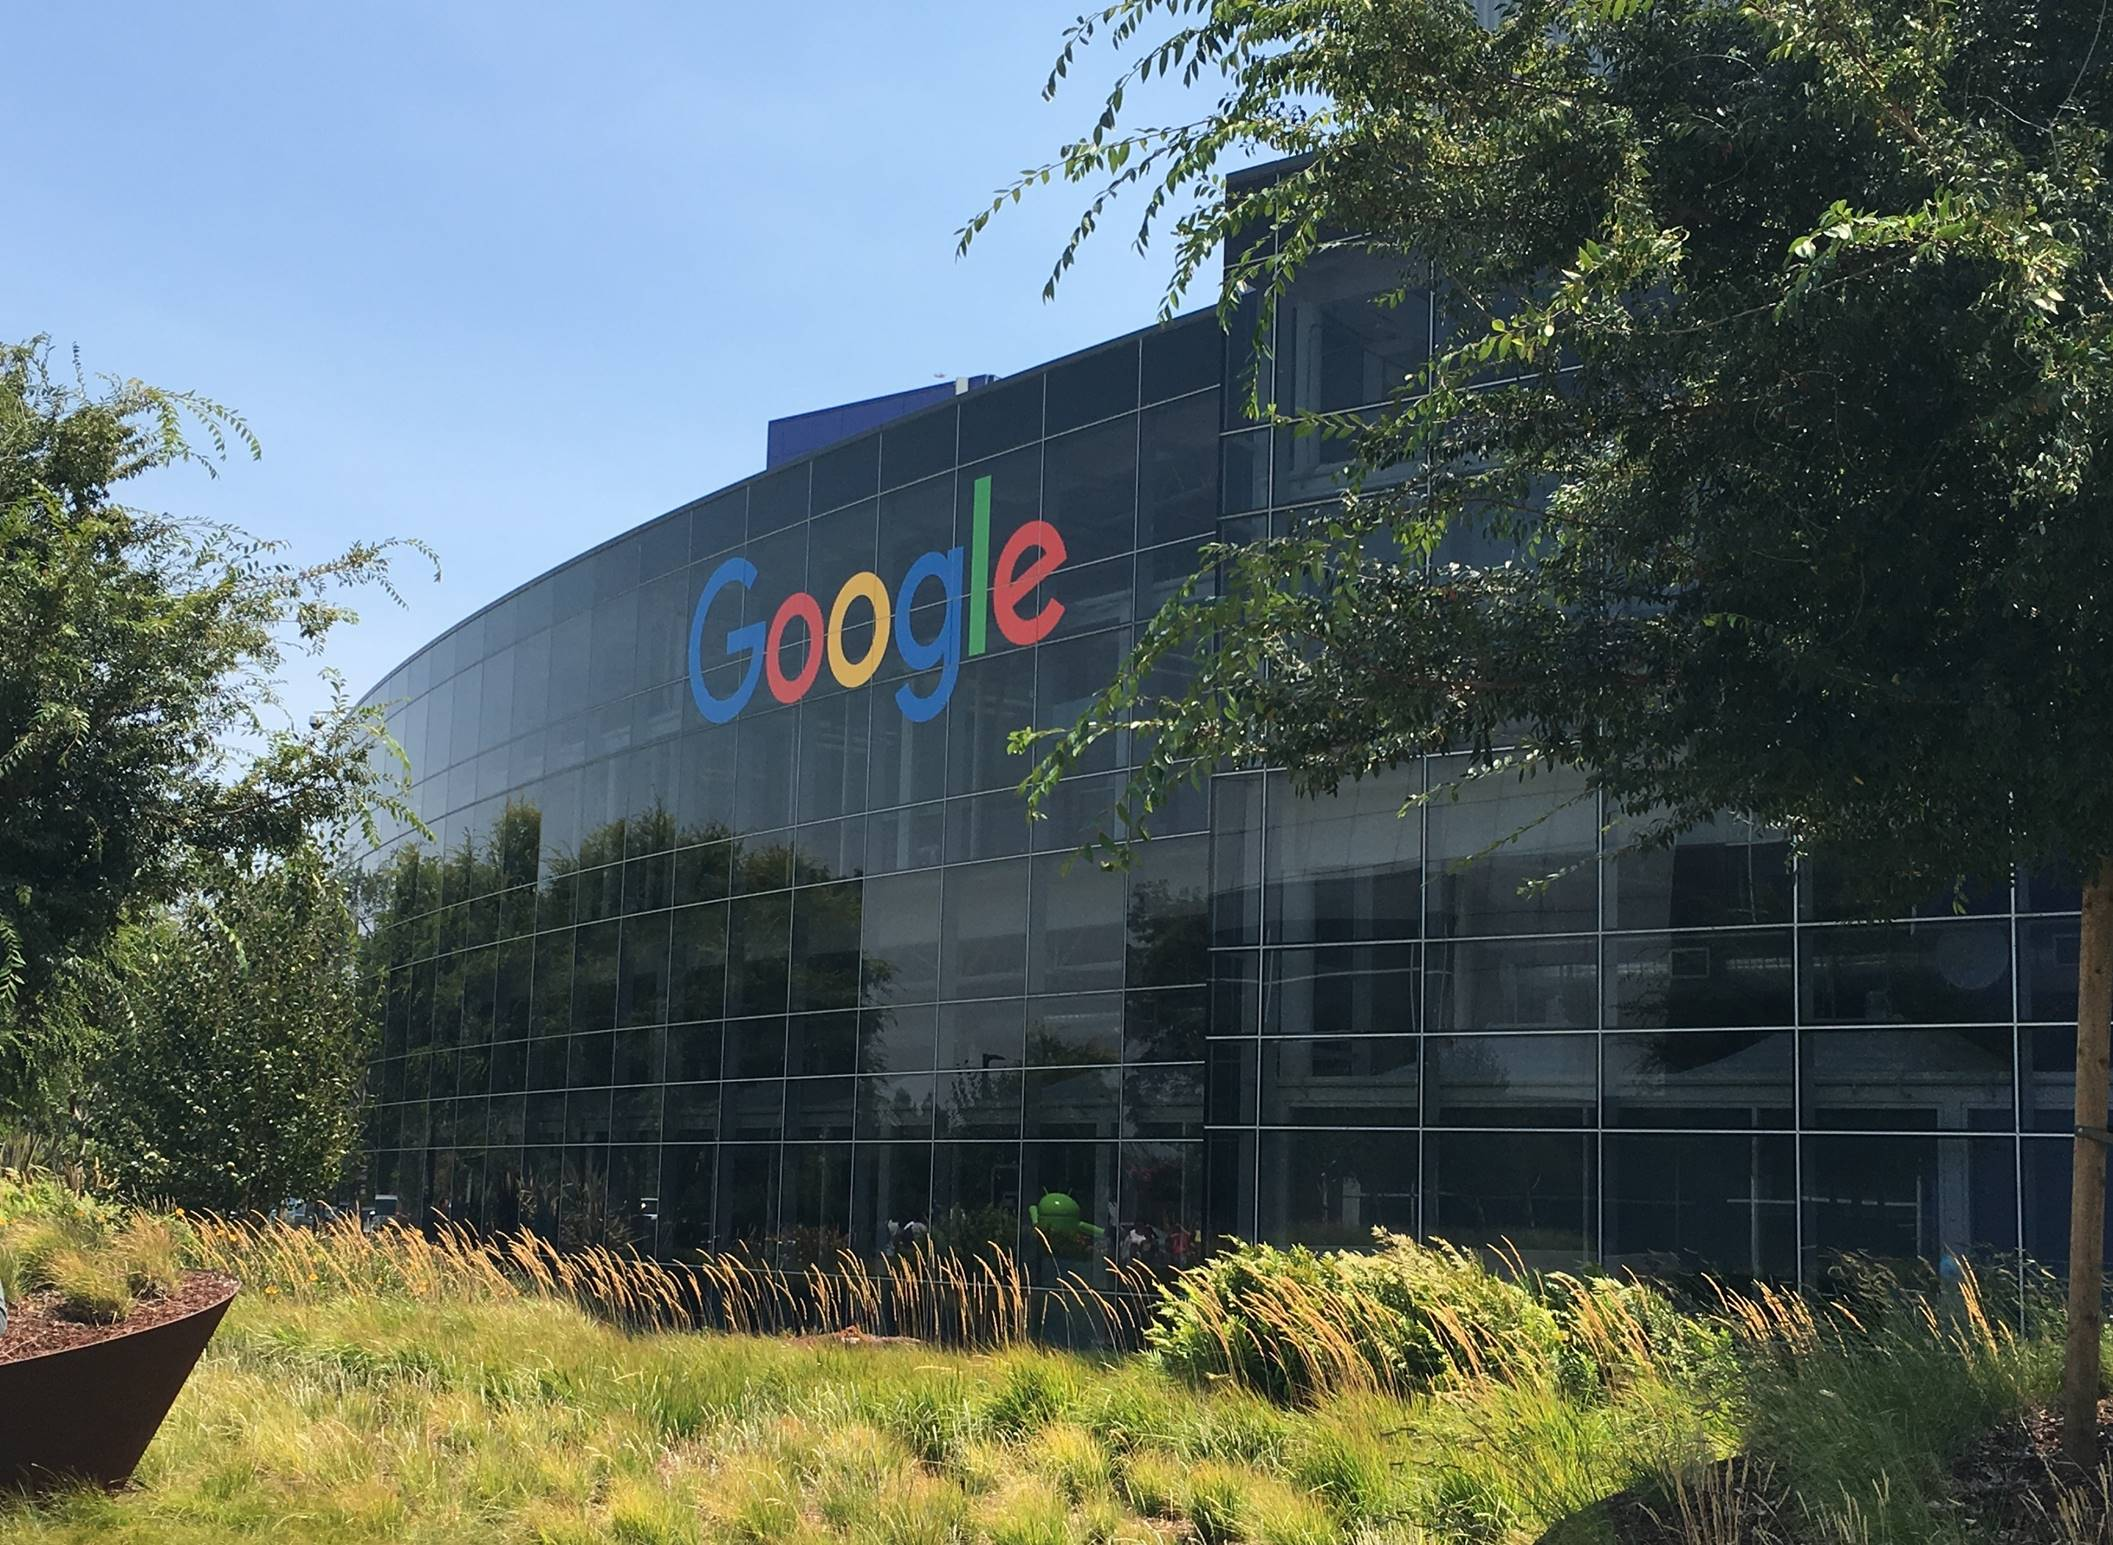 An image of Google's headquarters